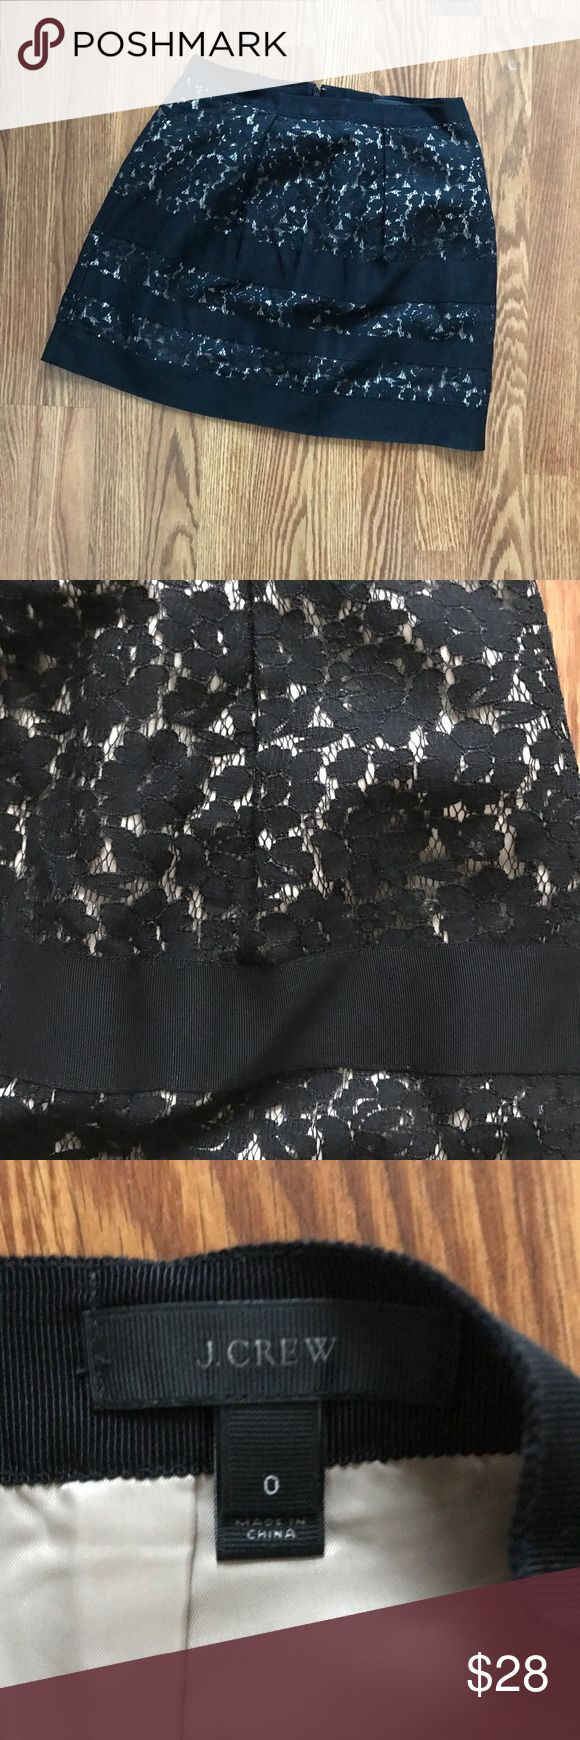 J. Crew Black Lace Mini Skirt NWOT! Fully lined Black lace J. Crew Skirt. Appx 16 1/2 inches lying flat. Classy and wonderful for church, work, or play! Nude undertones. Worn with chambray top, white button down, and various sweaters. Feminine! J. Crew Skirts Mini